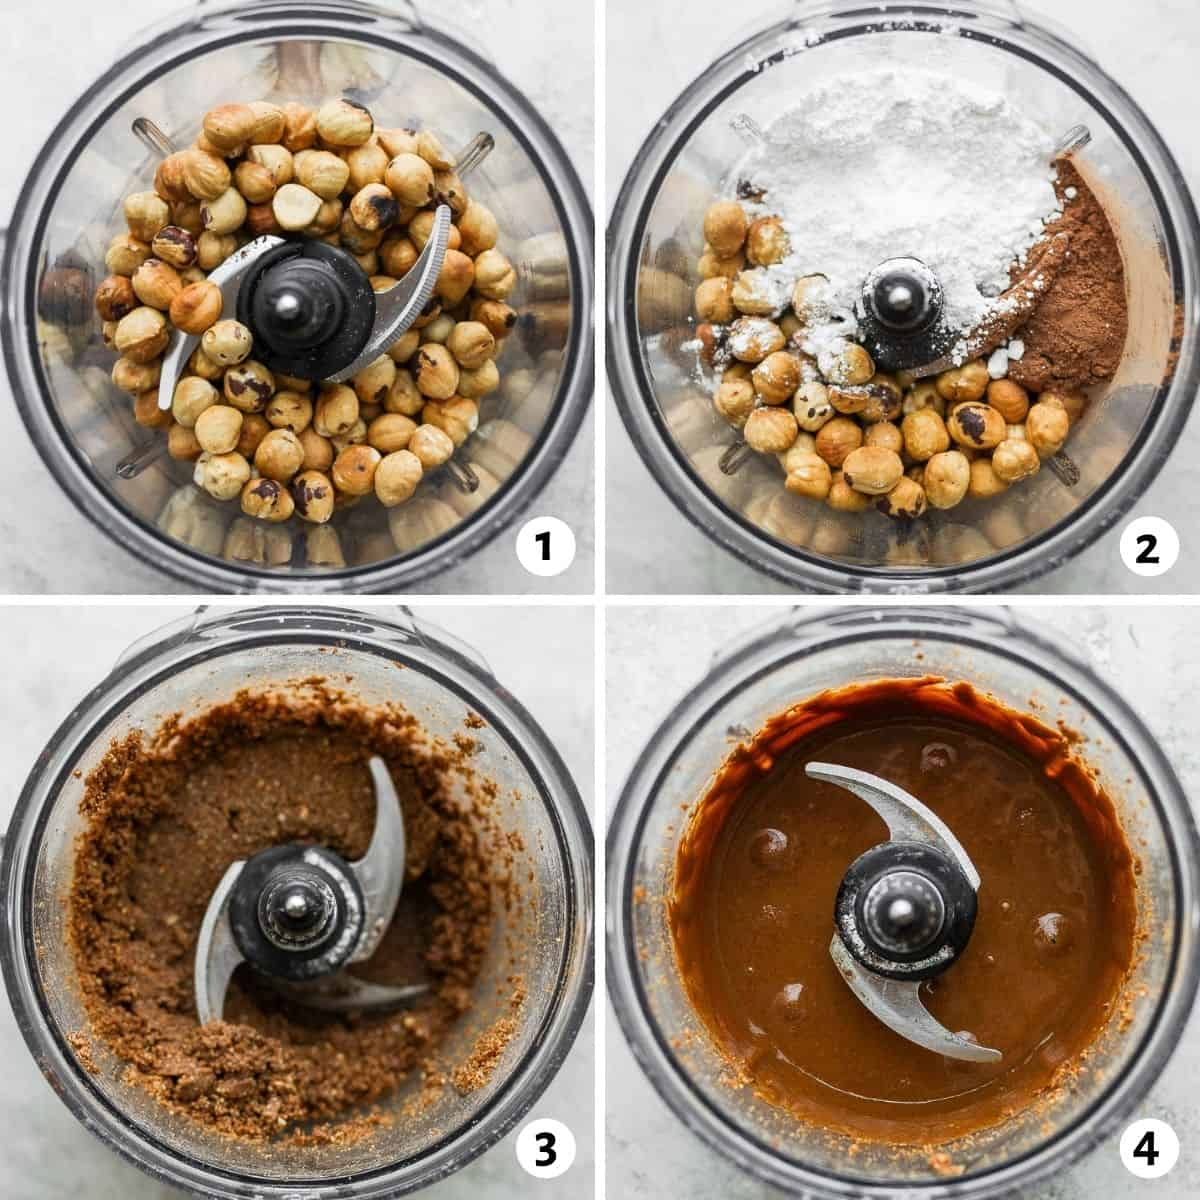 4 photos in collage to show the steps for blending the ingredients to make the spread in a food processor